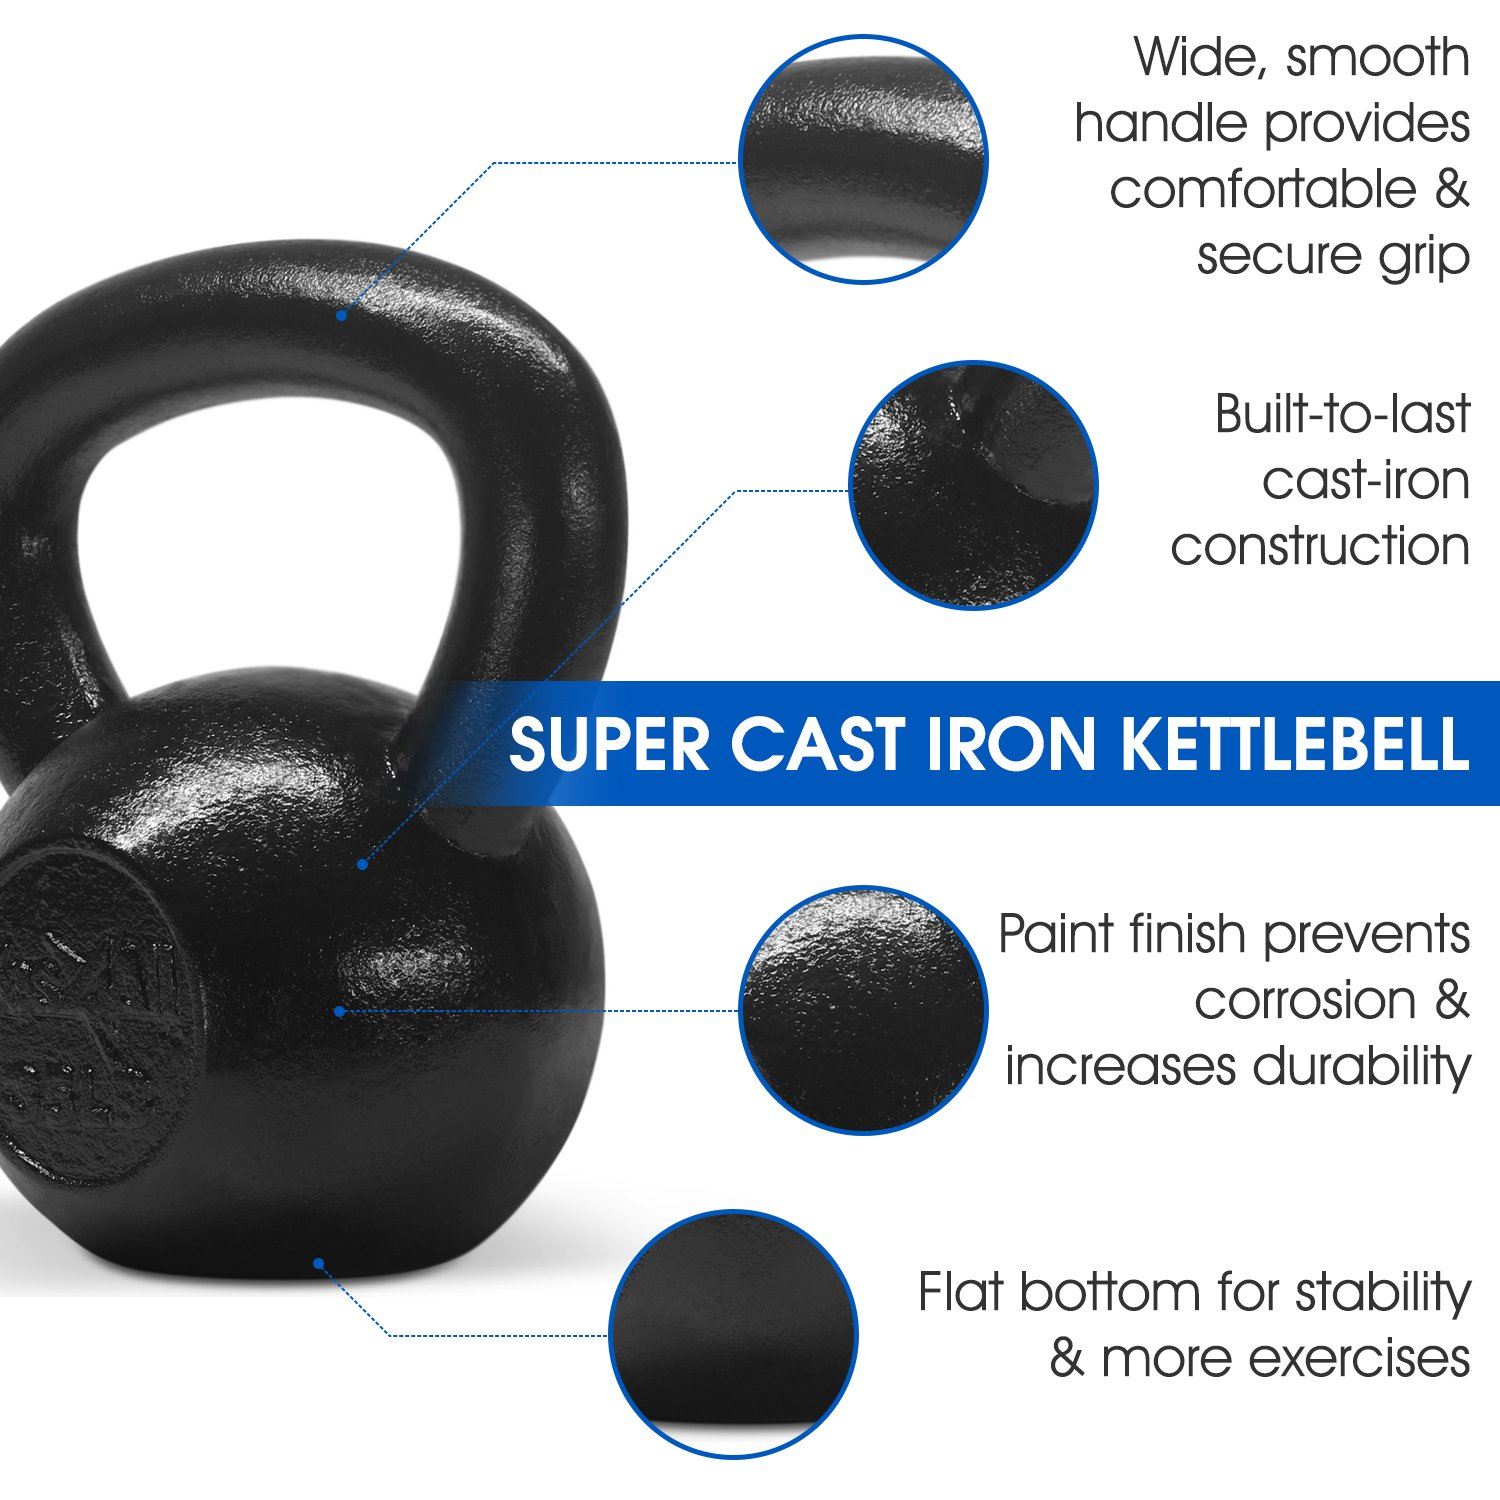 Yes4All Solid Cast Iron Kettlebell Weights Set - Great for Full Body Workout and Strength Training - Kettlebell 35 lbs (Black) by Yes4All (Image #4)